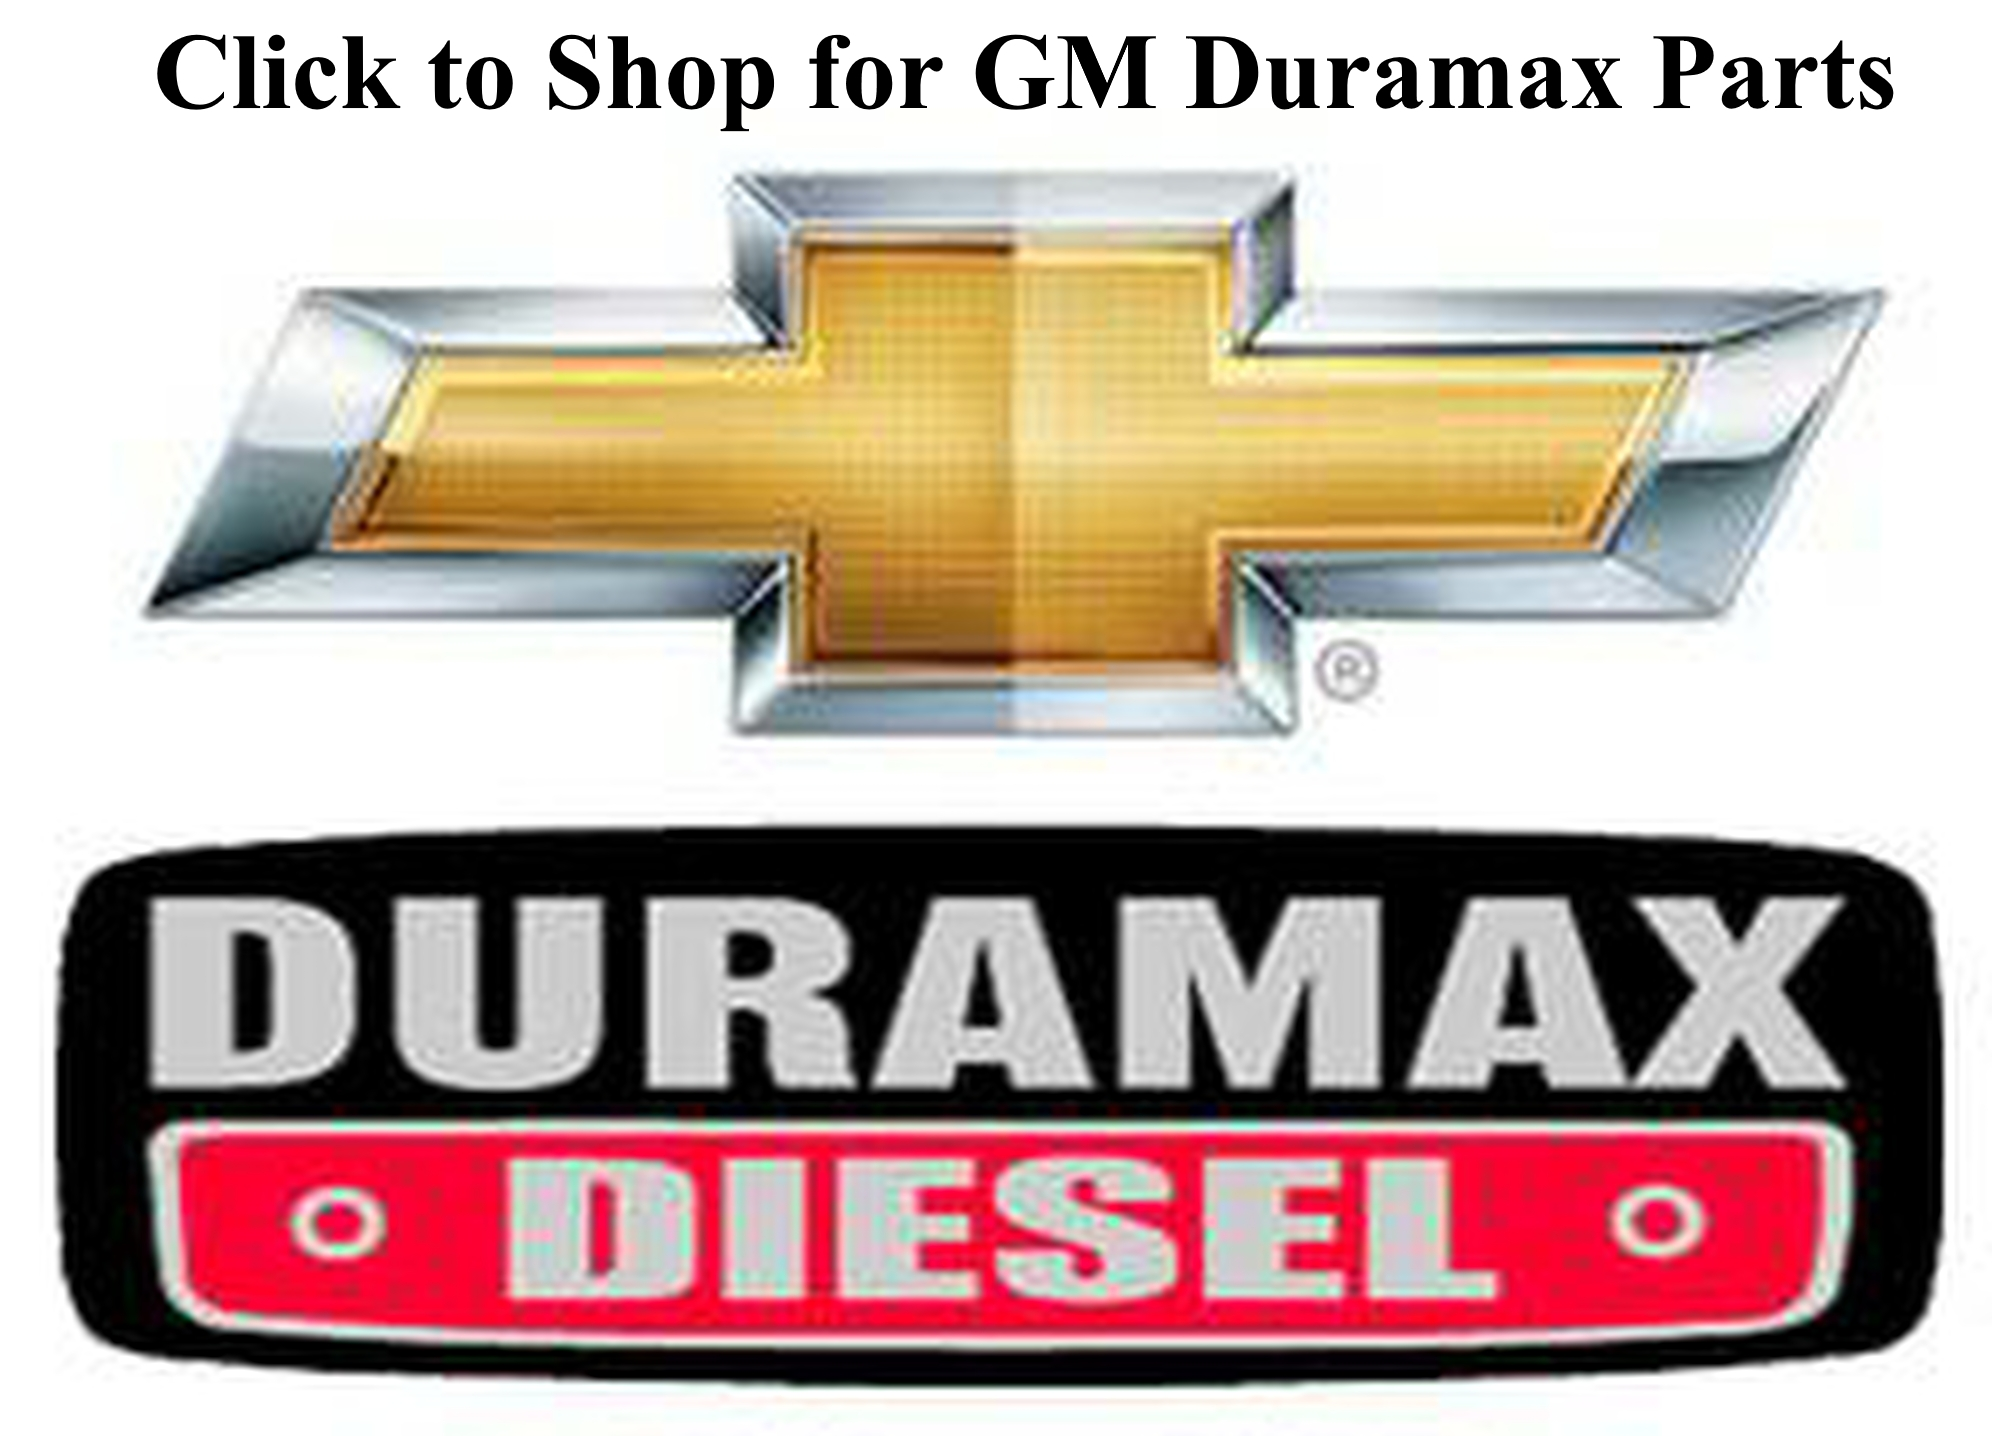 Browse Duramax Parts